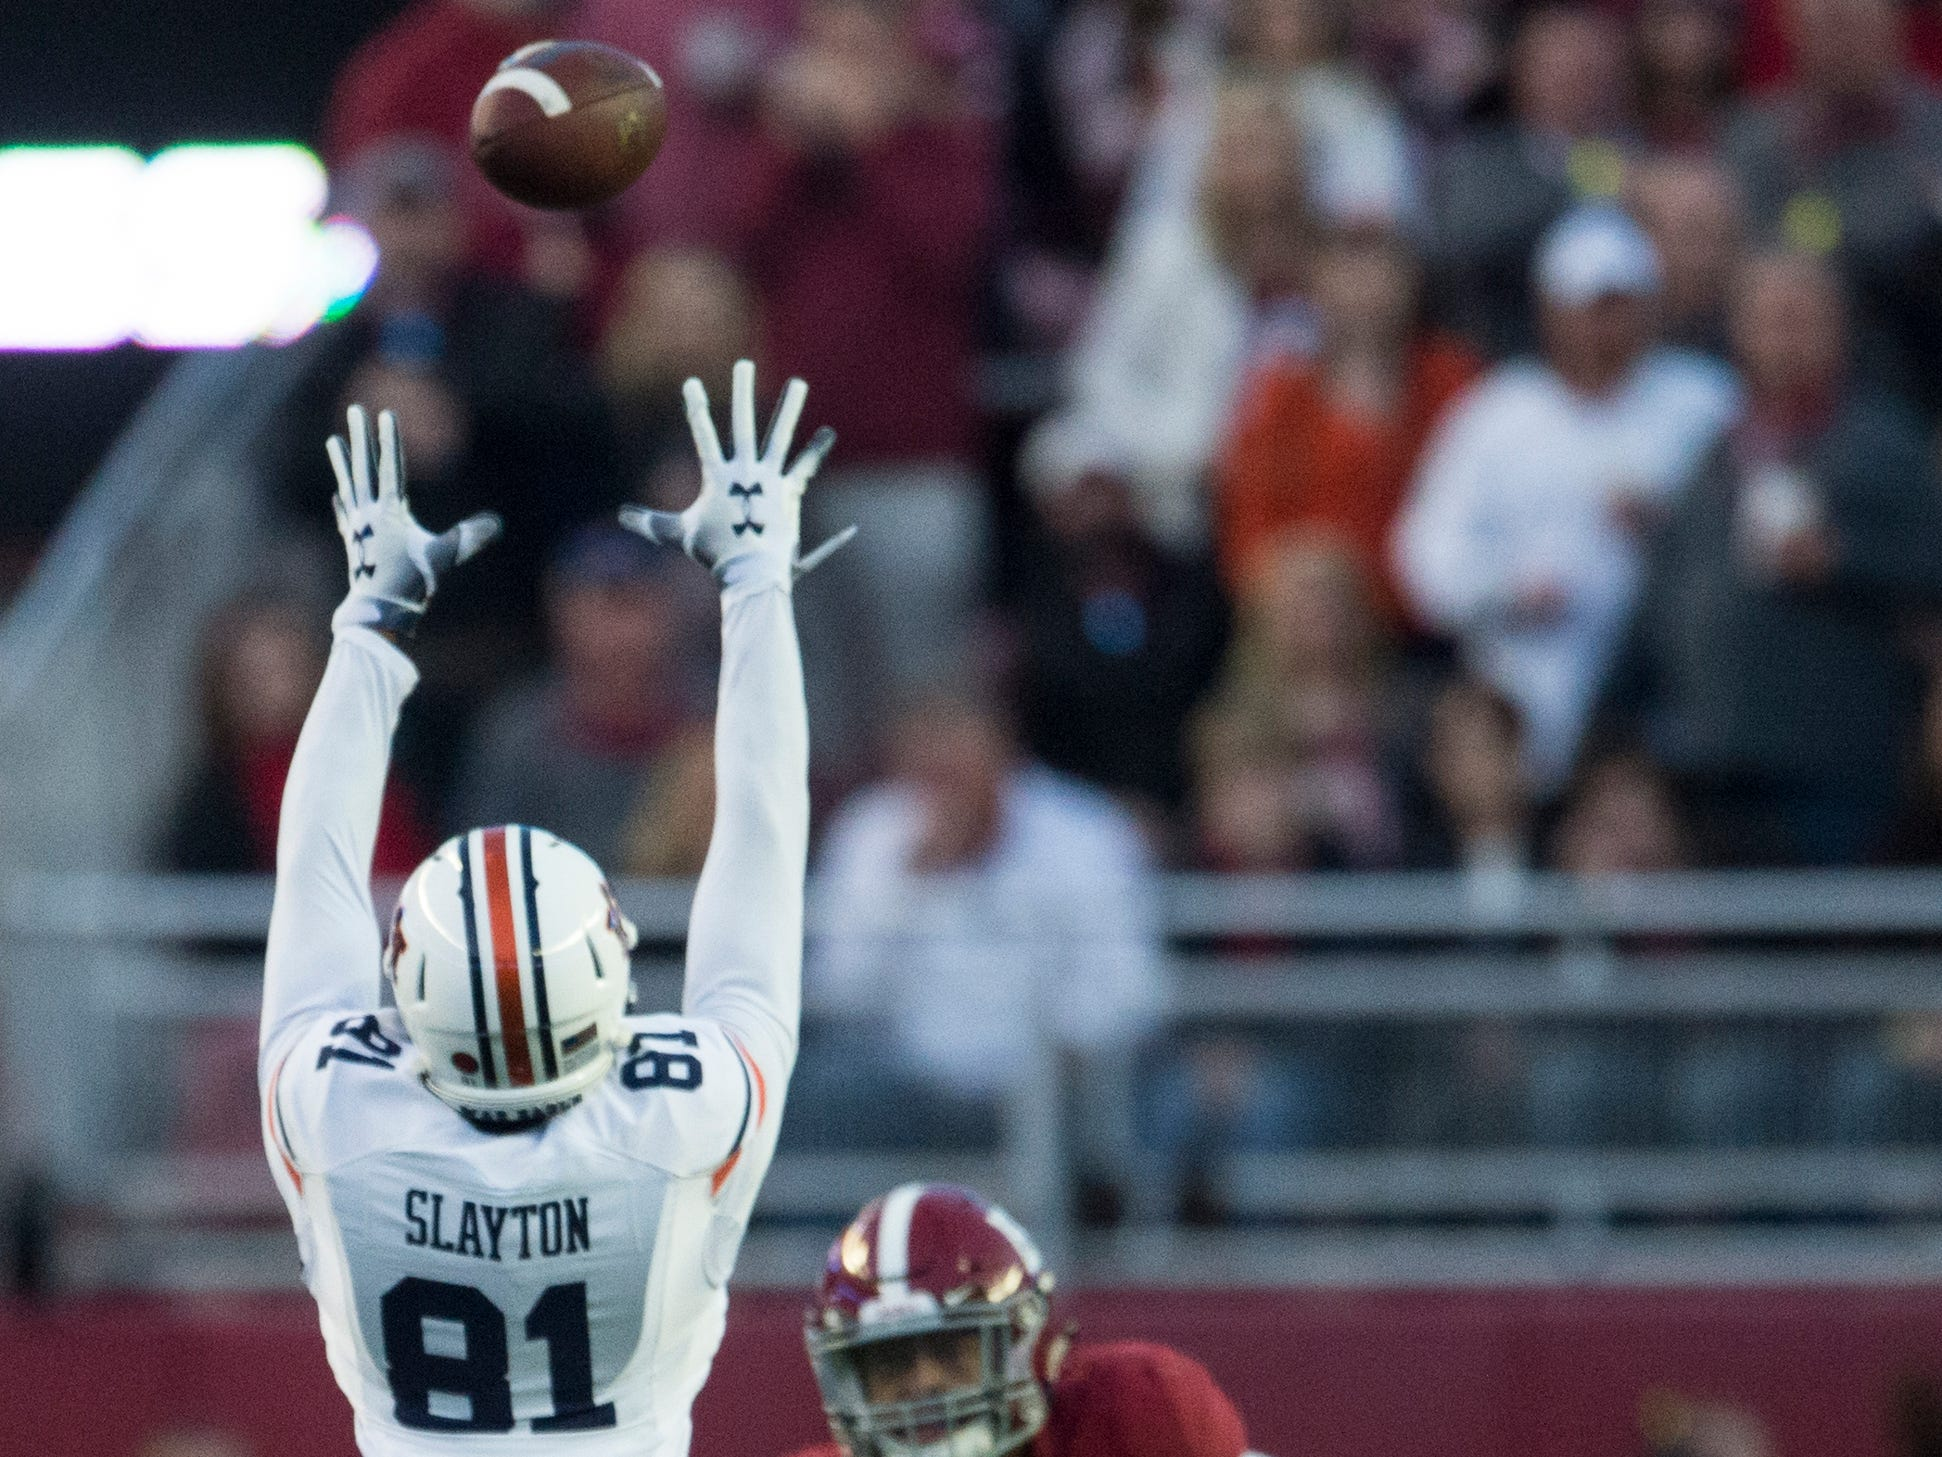 Auburn wide receiver Darius Slayton (81) misses a high pass during the Iron Bowl at Bryant-Denny Stadium in Tuscaloosa, Ala., on Saturday, Nov. 24, 2018. Alabama defeated Auburn 52-21.